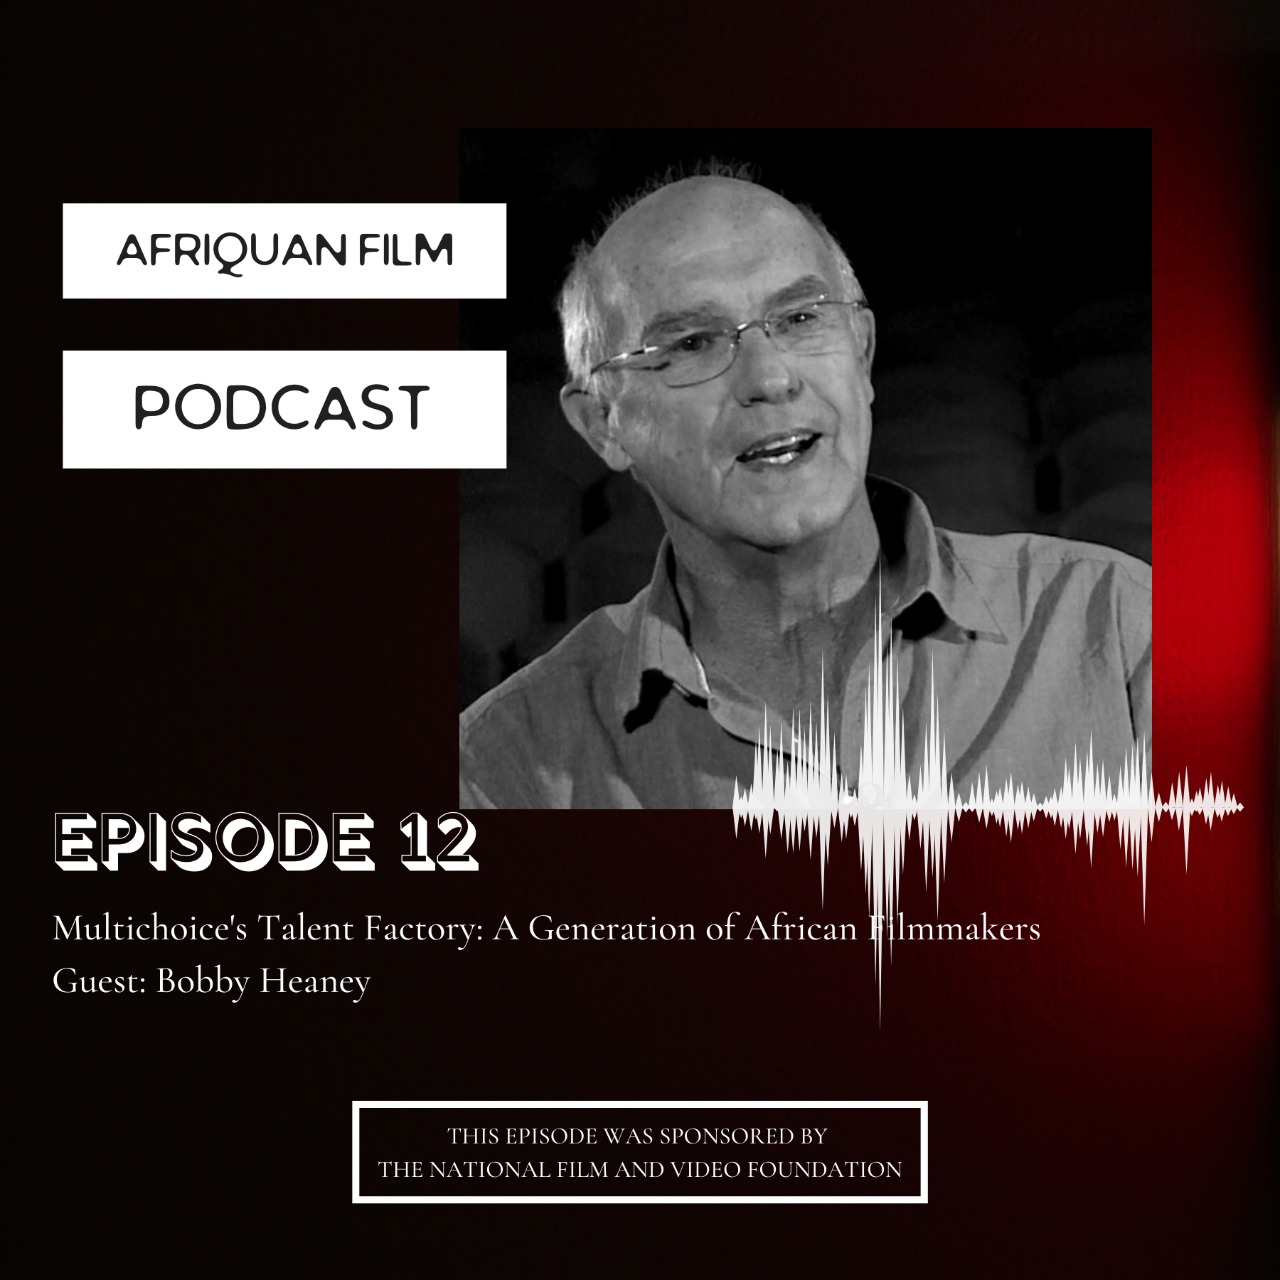 Afriquan Film Podcast S1E12 – Bobby Heaney